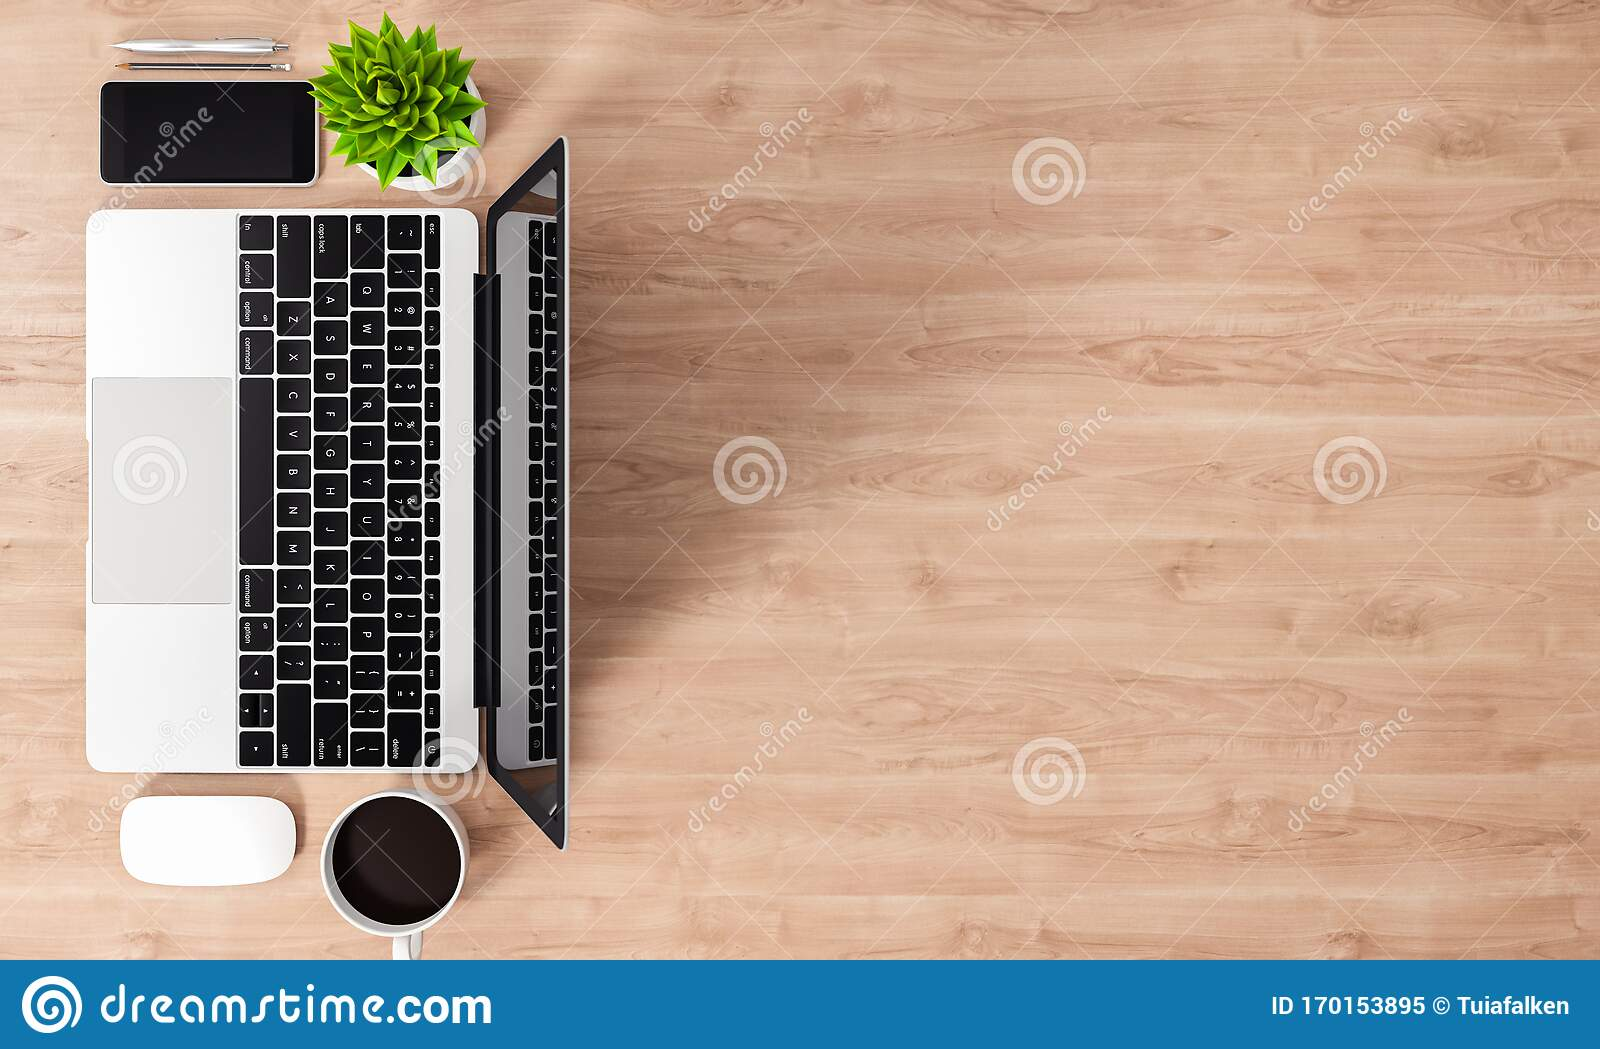 Laptop And Other Devices On Wood Office Desk Top View Copy Space 3d Rendering Stock Illustration Illustration Of Accessory Information 170153895